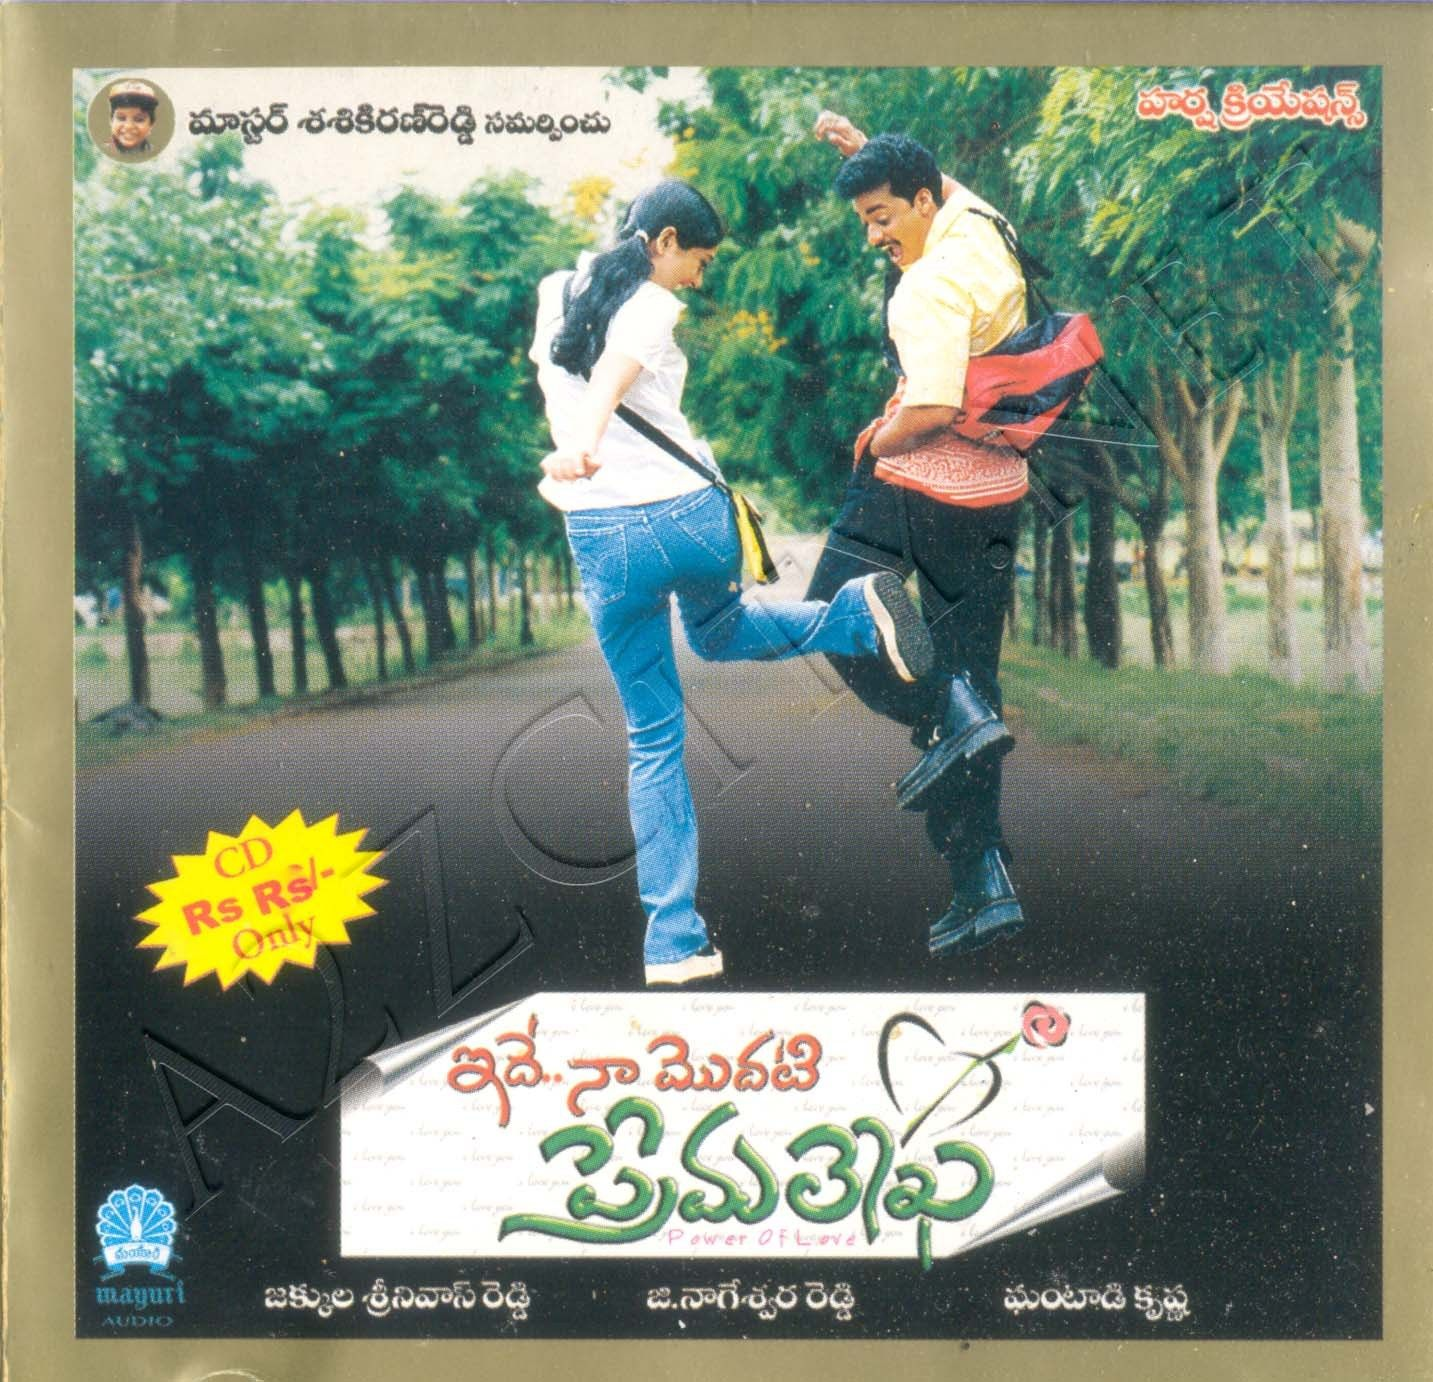 ide naa modati premalekha movie songs